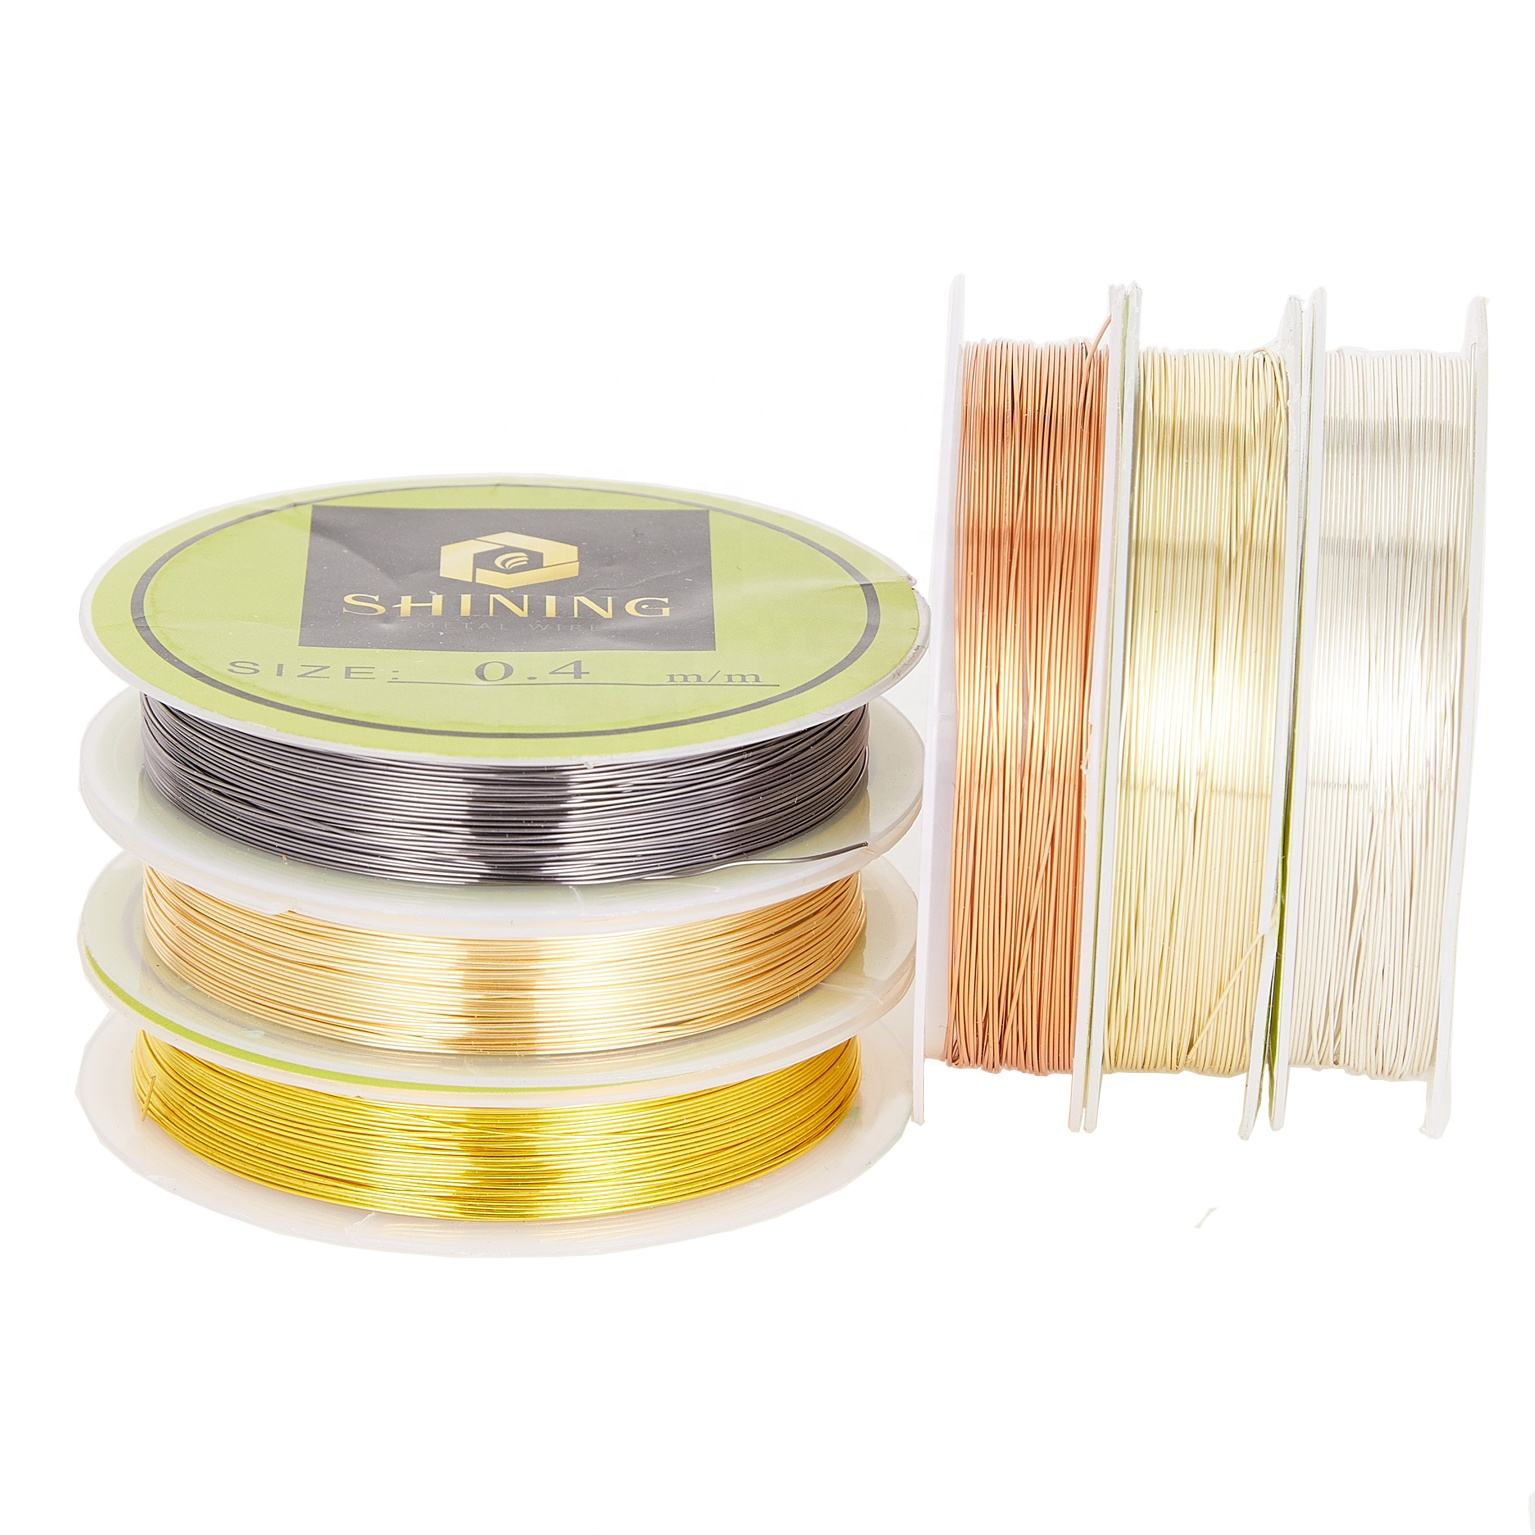 Factory Permanently Colored Jewelry Wire Non Tarnished Copper Wire For Jewelry Making